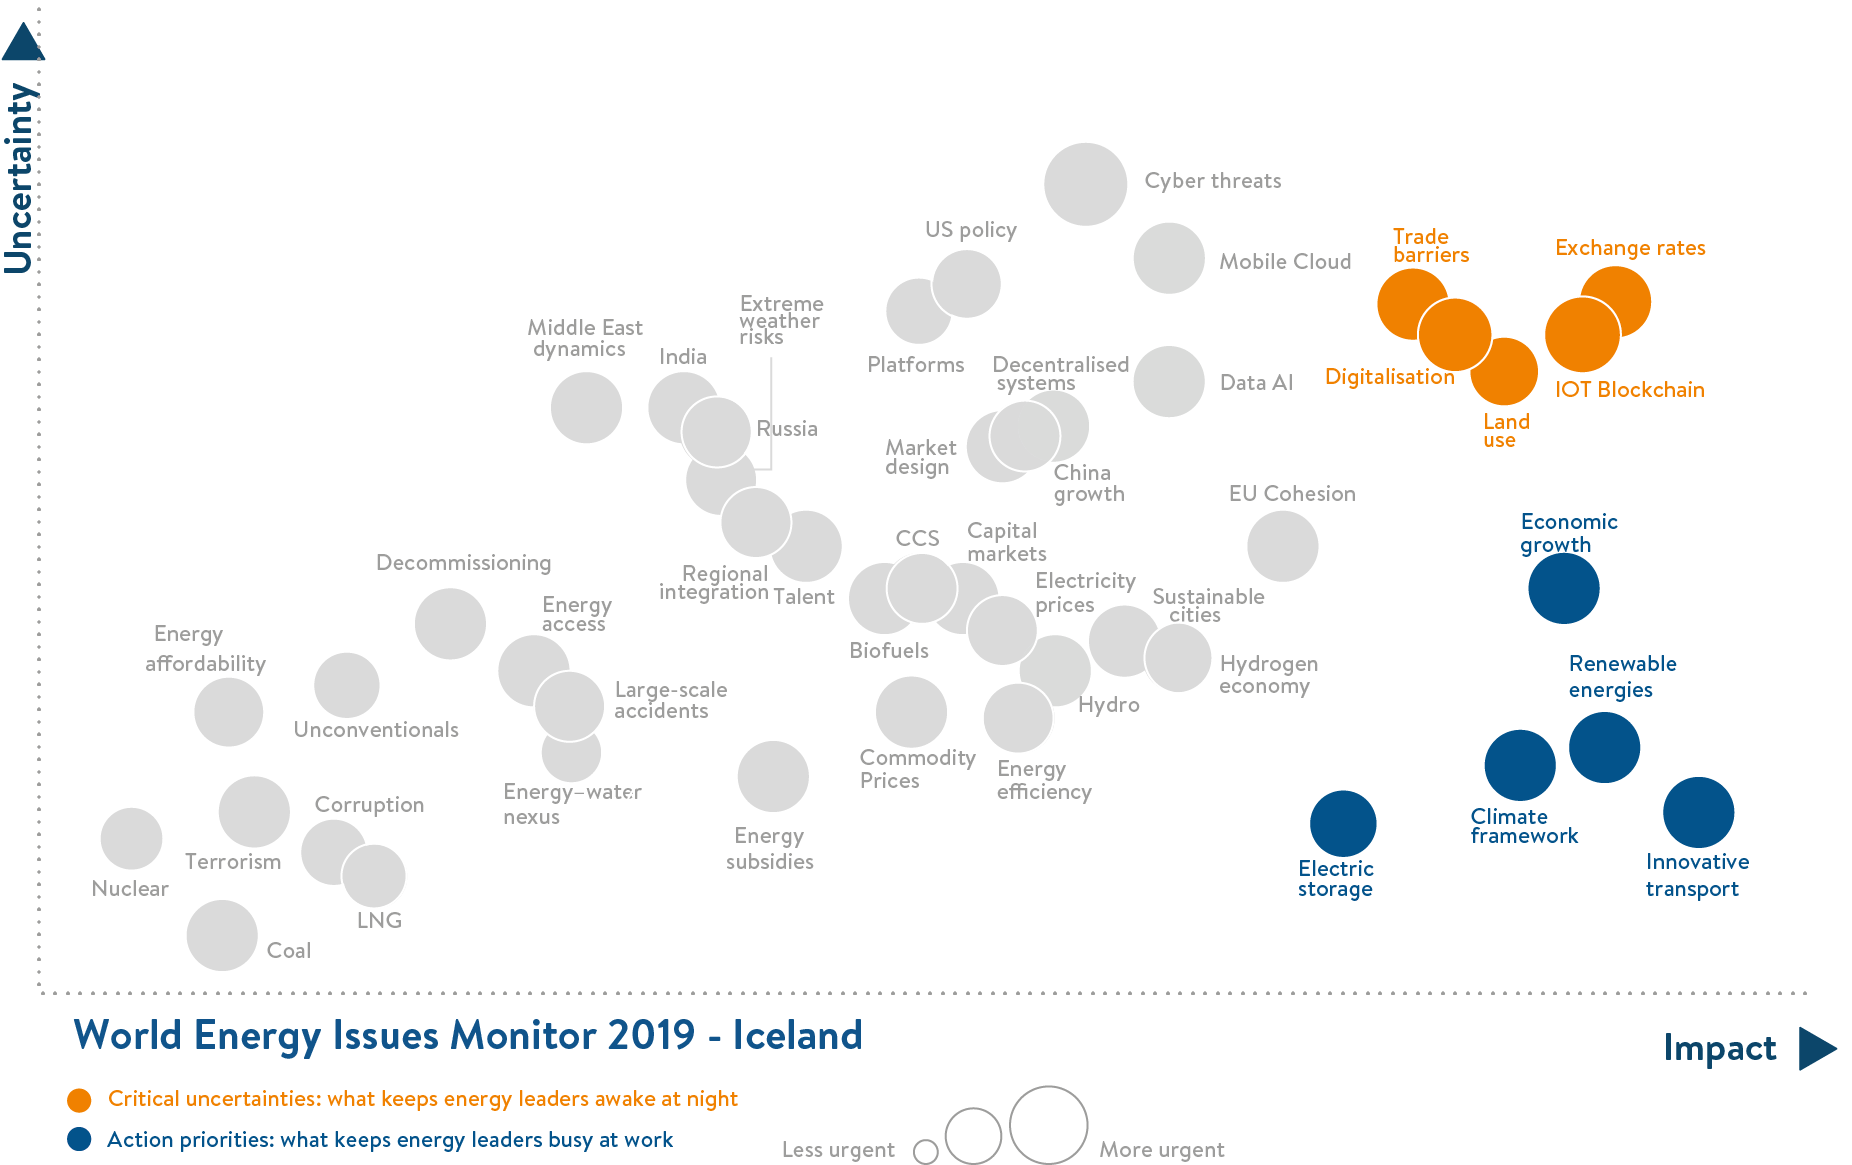 iceland, critical uncertainties, action priorities